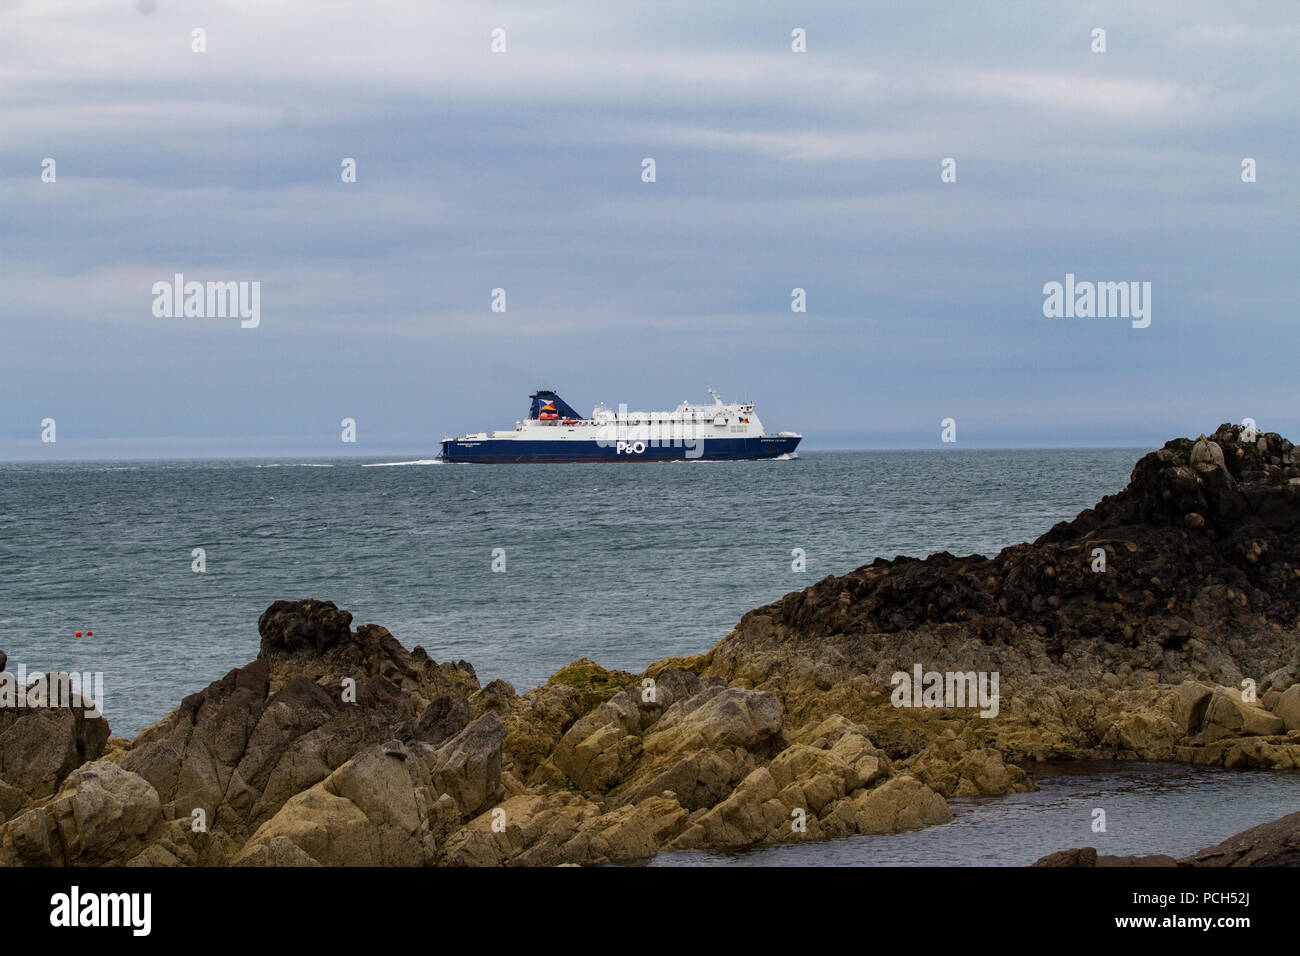 P.O ferry in Irish sea near Lock Ryan on way to Cairnryan Ferry Port from Ireland. Scotland - Stock Image